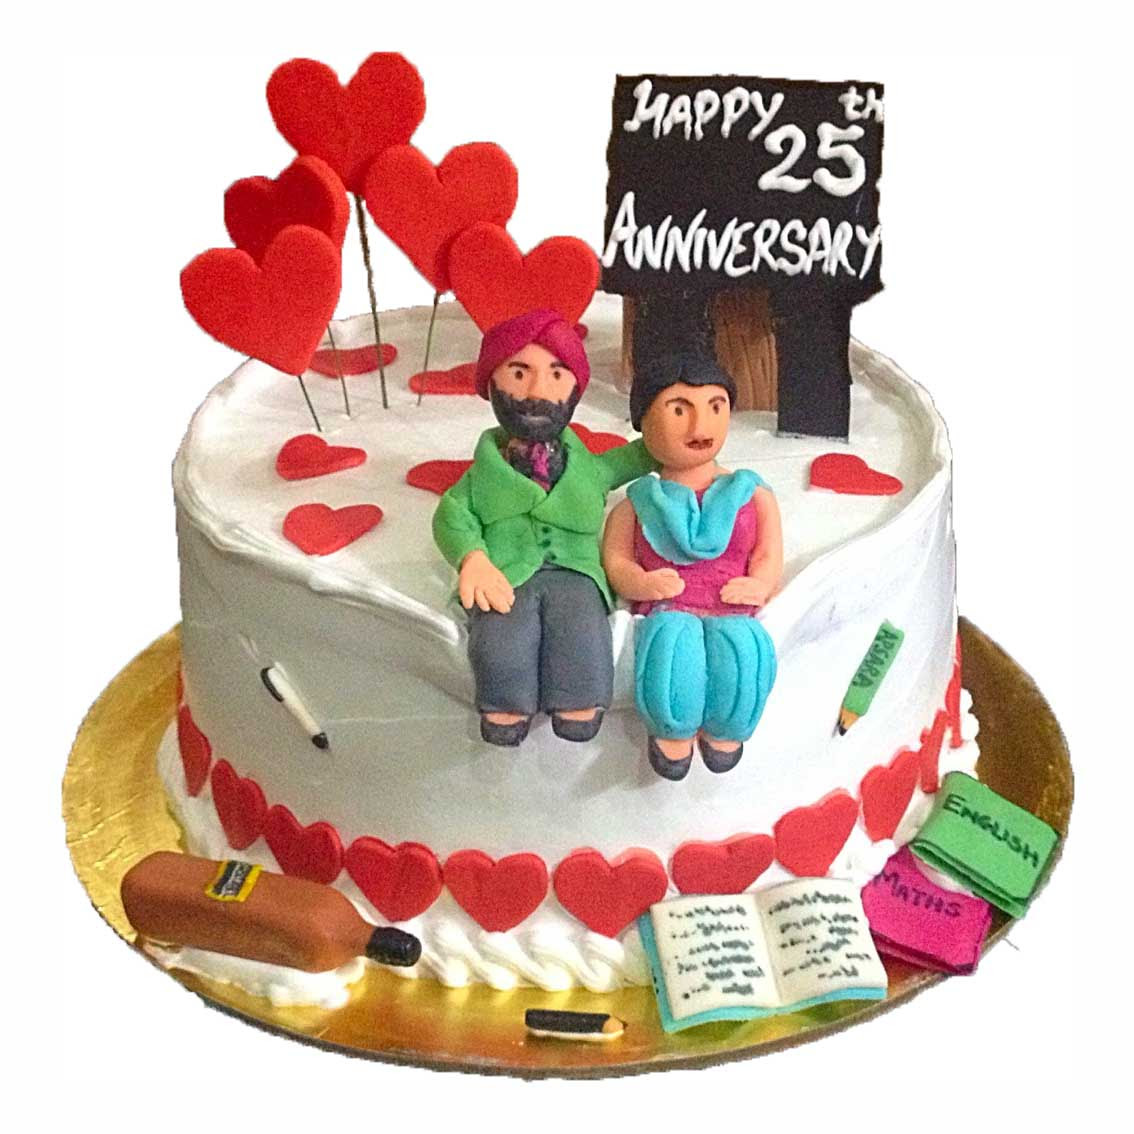 Marriage Anniversary Cake Grill To Chill